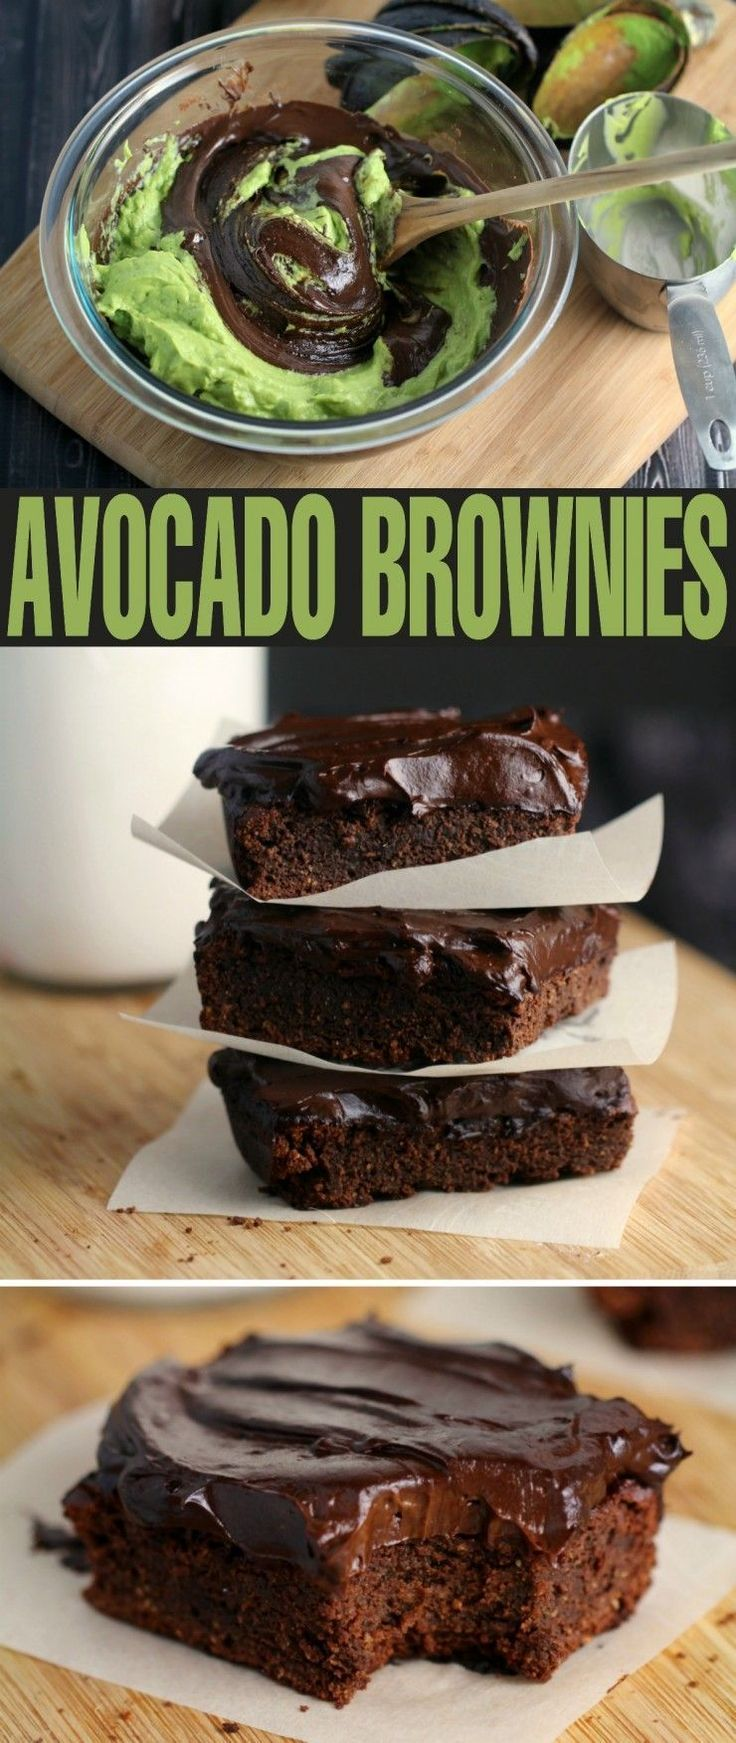 AVOCADO FROSTING! – These Fudgy Avocado Brownies with Avocado Frosting are an in…